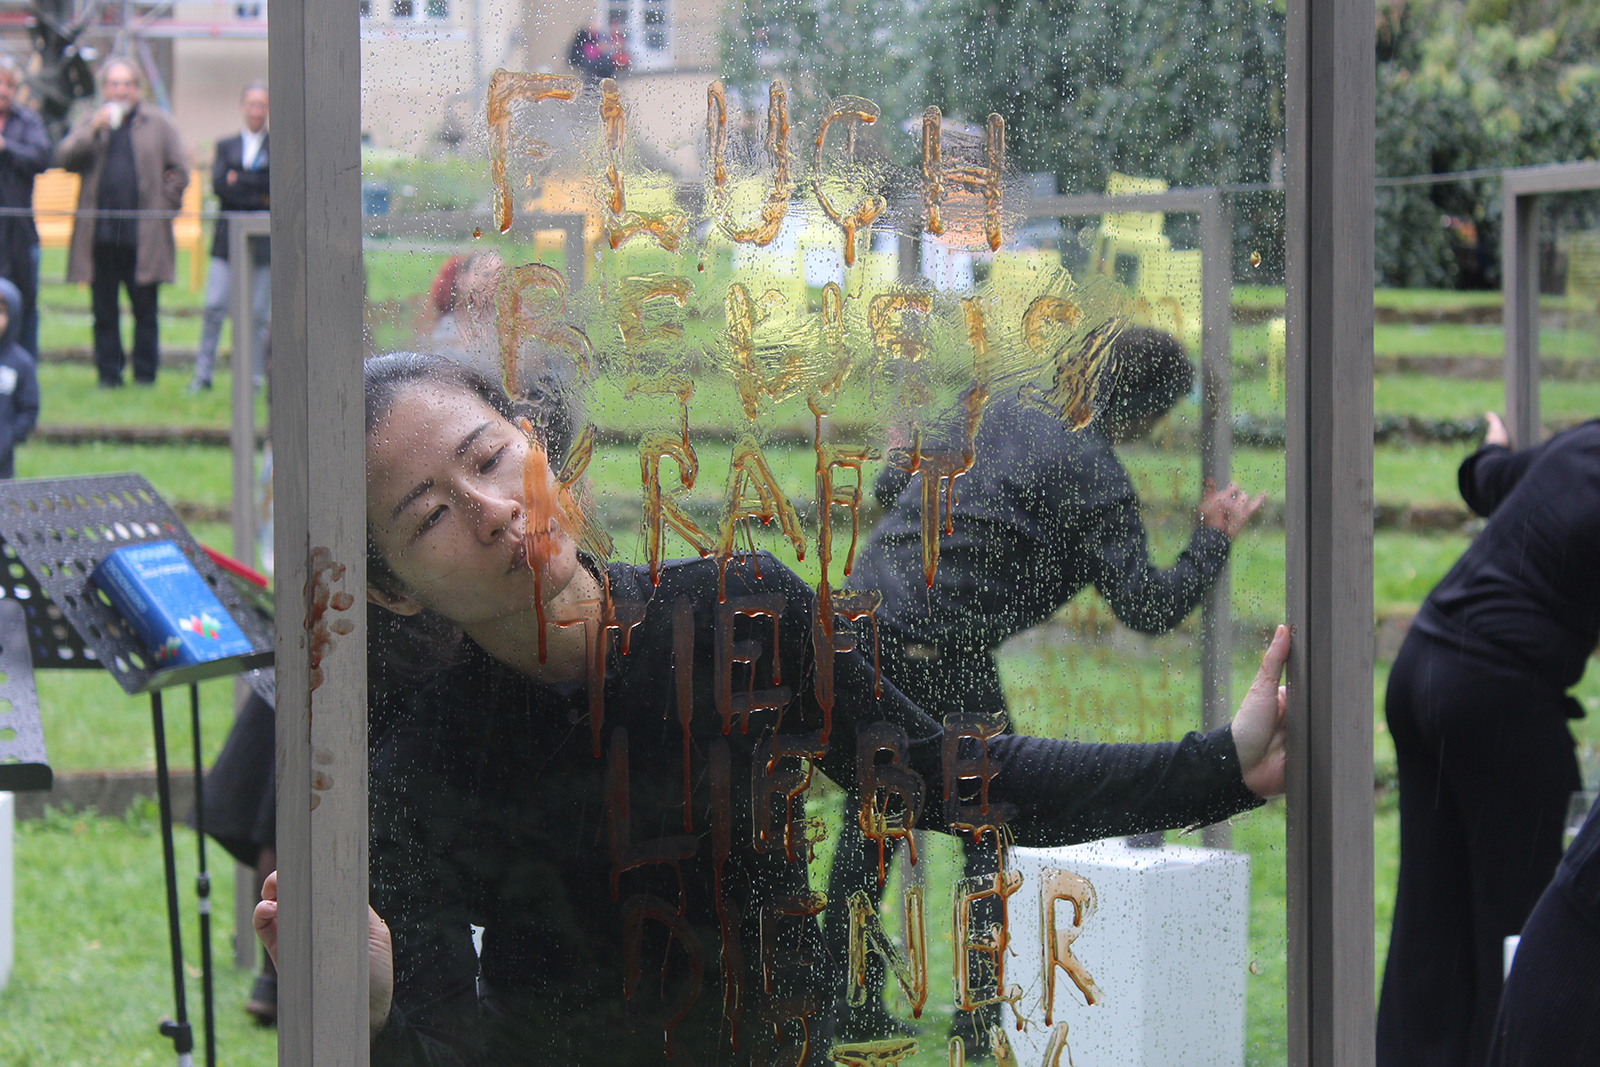 Nezaket Ekici and Shahar Marcus, The Honey Project, performance installation, 2018, Baustellenfest, Haus am Waldsee, Skulpturenpark, Berlin